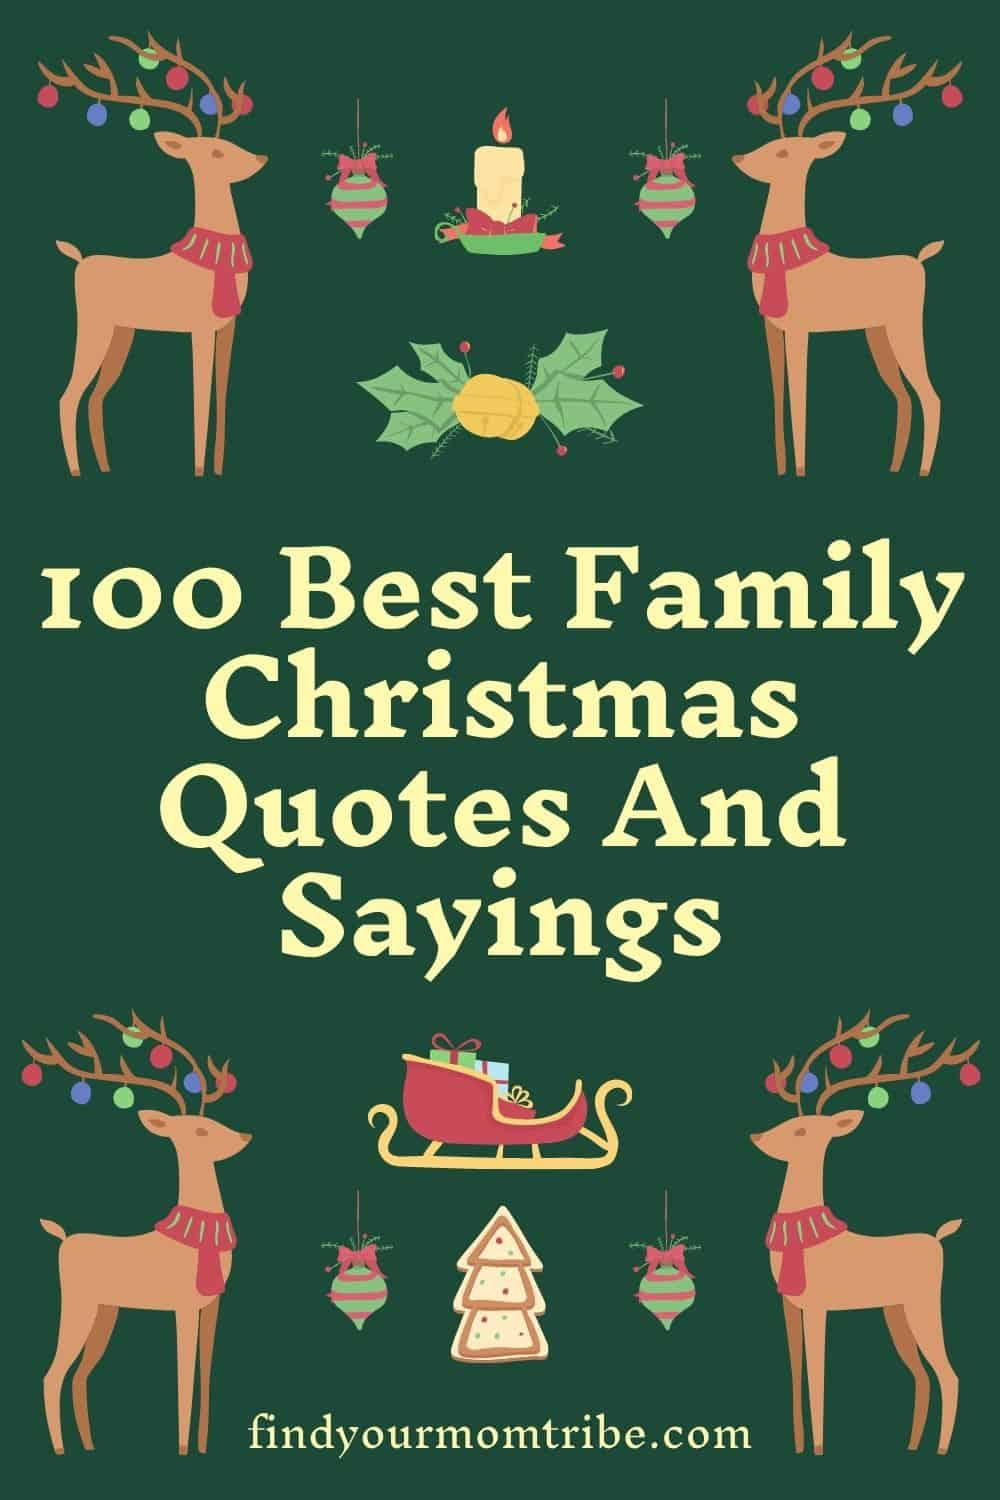 100 Best Family Christmas Quotes And Sayings